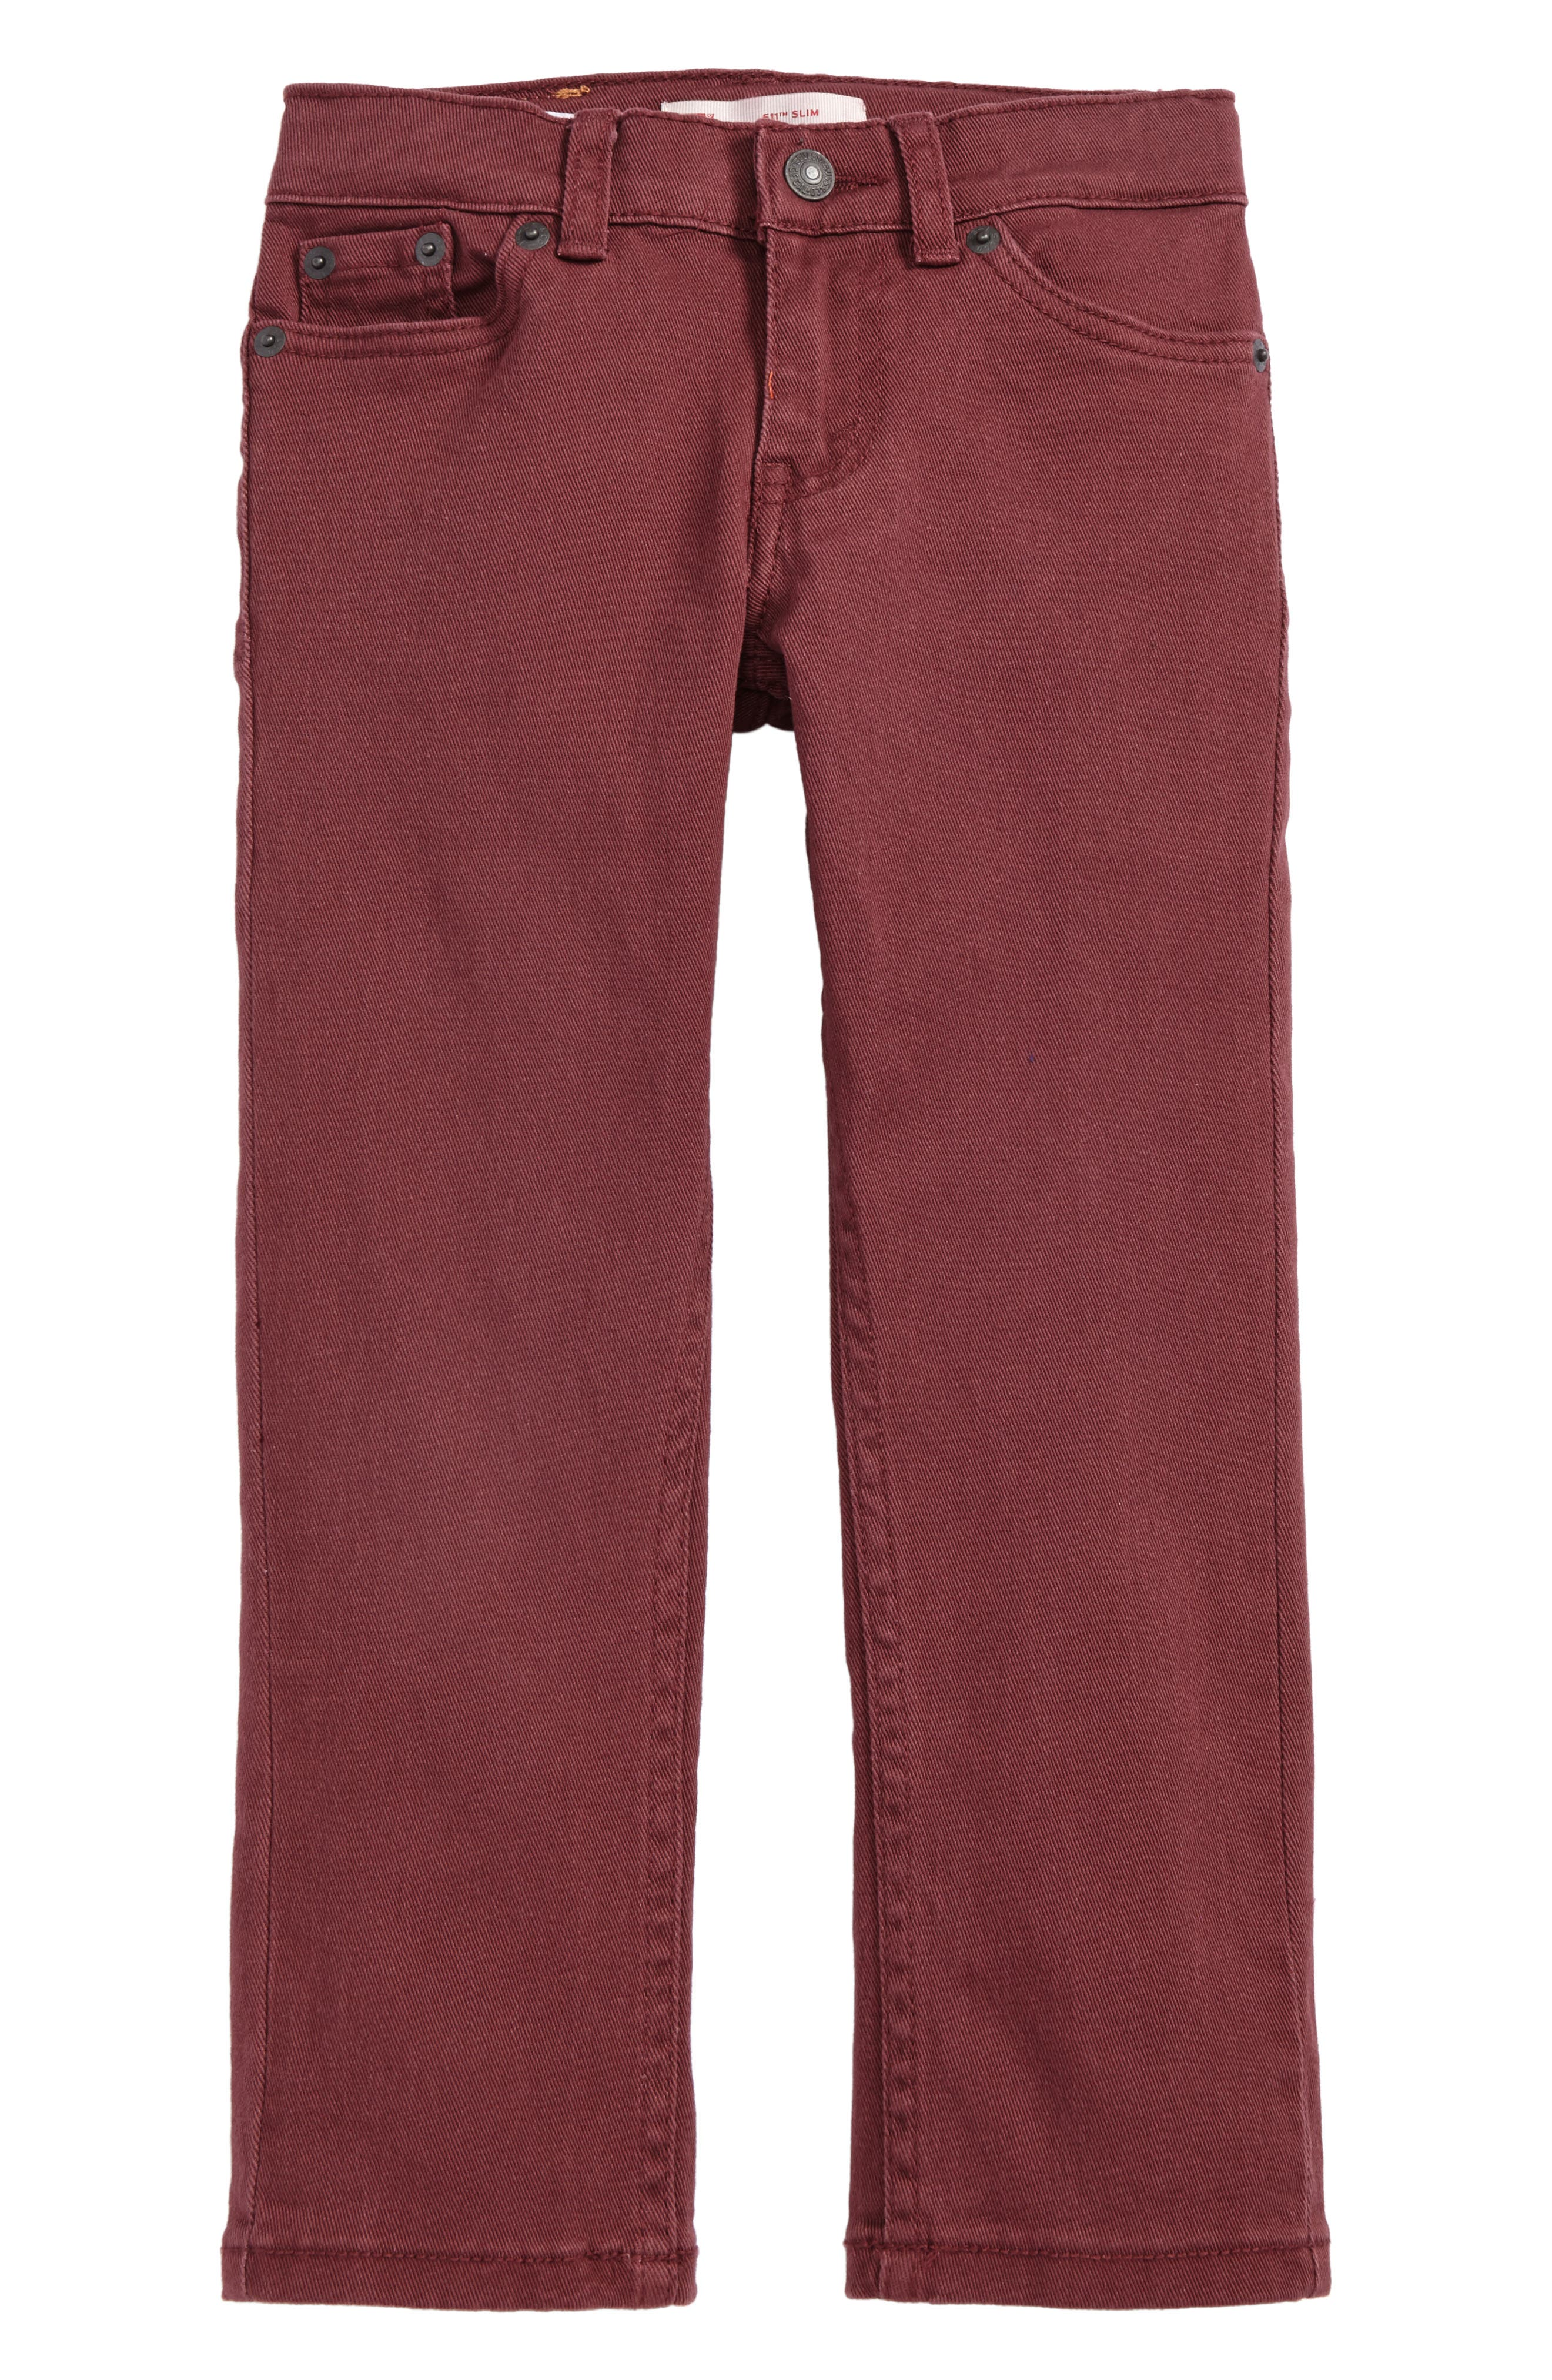 Alternate Image 1 Selected - Levi's® 511™ Slim Fit Jeans (Toddler Boys & Little Boys)